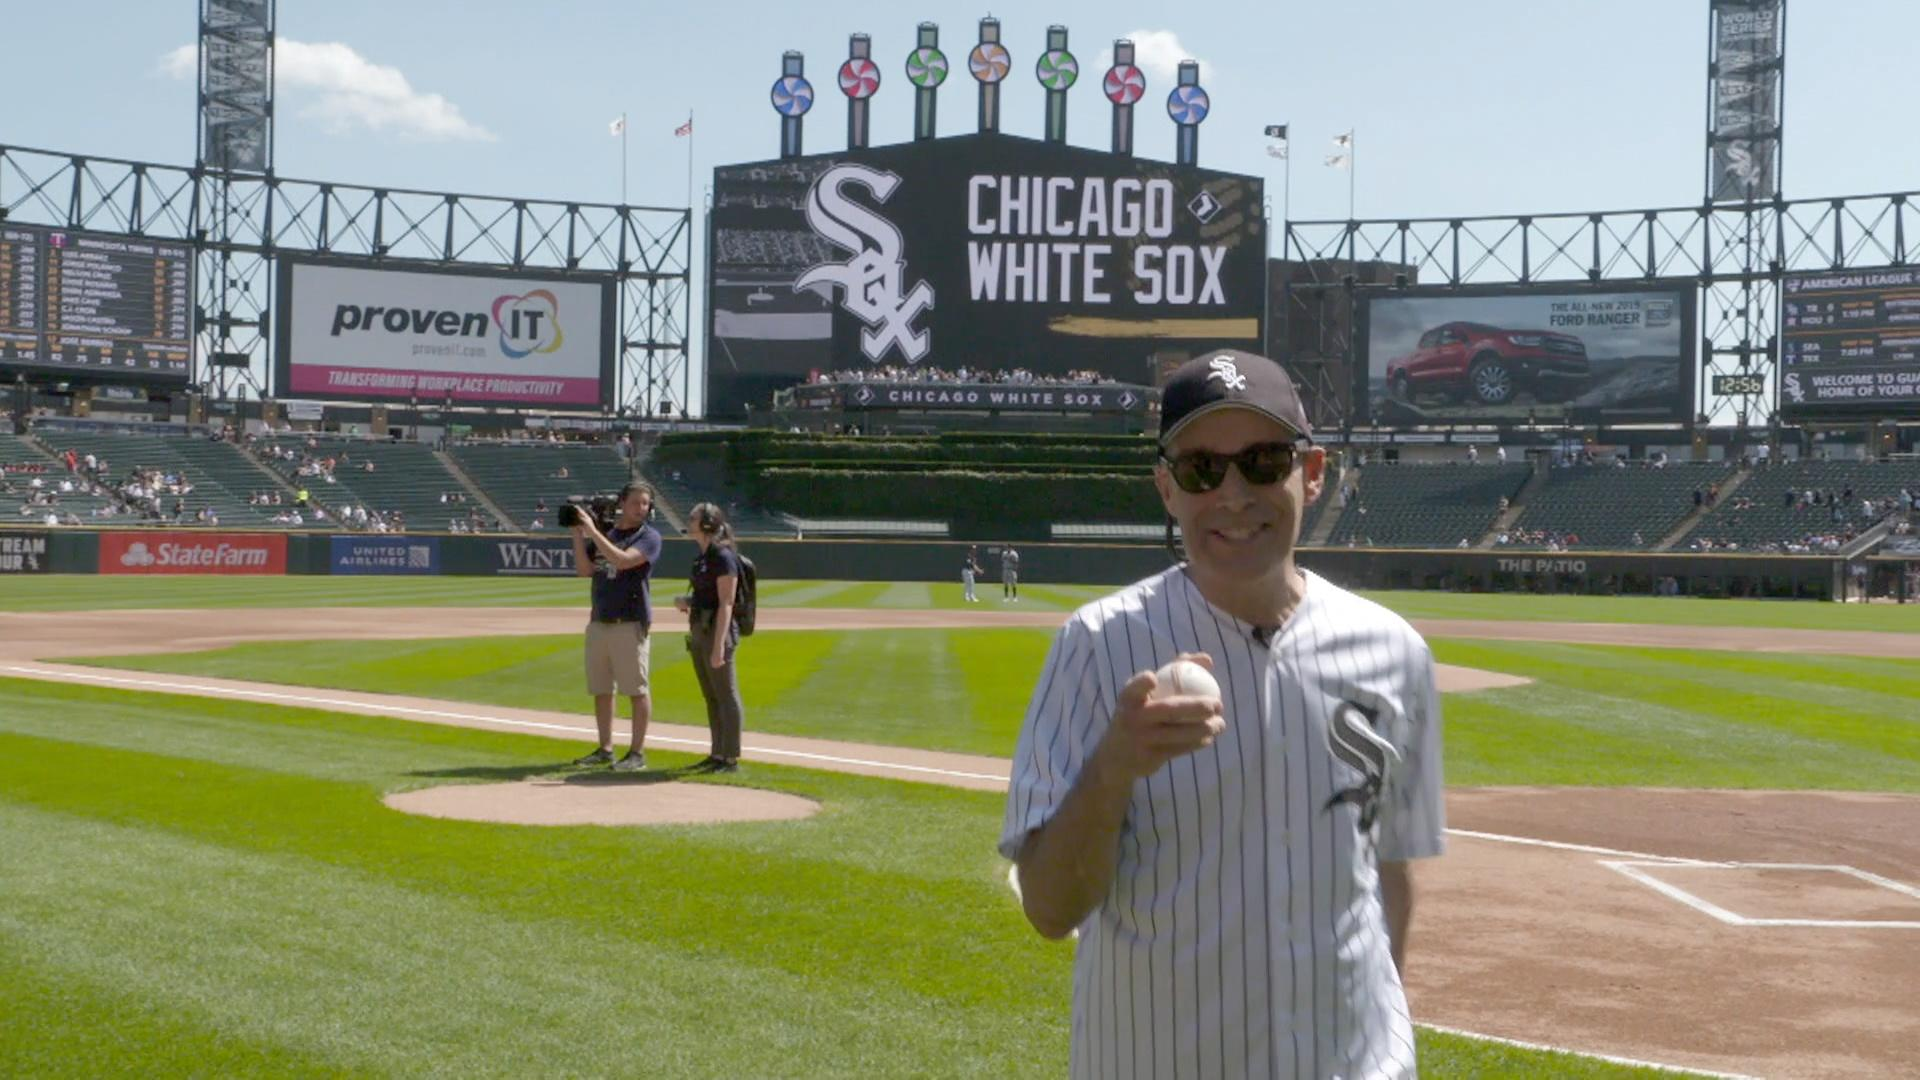 Neighborhood Spotlight: The White Sox